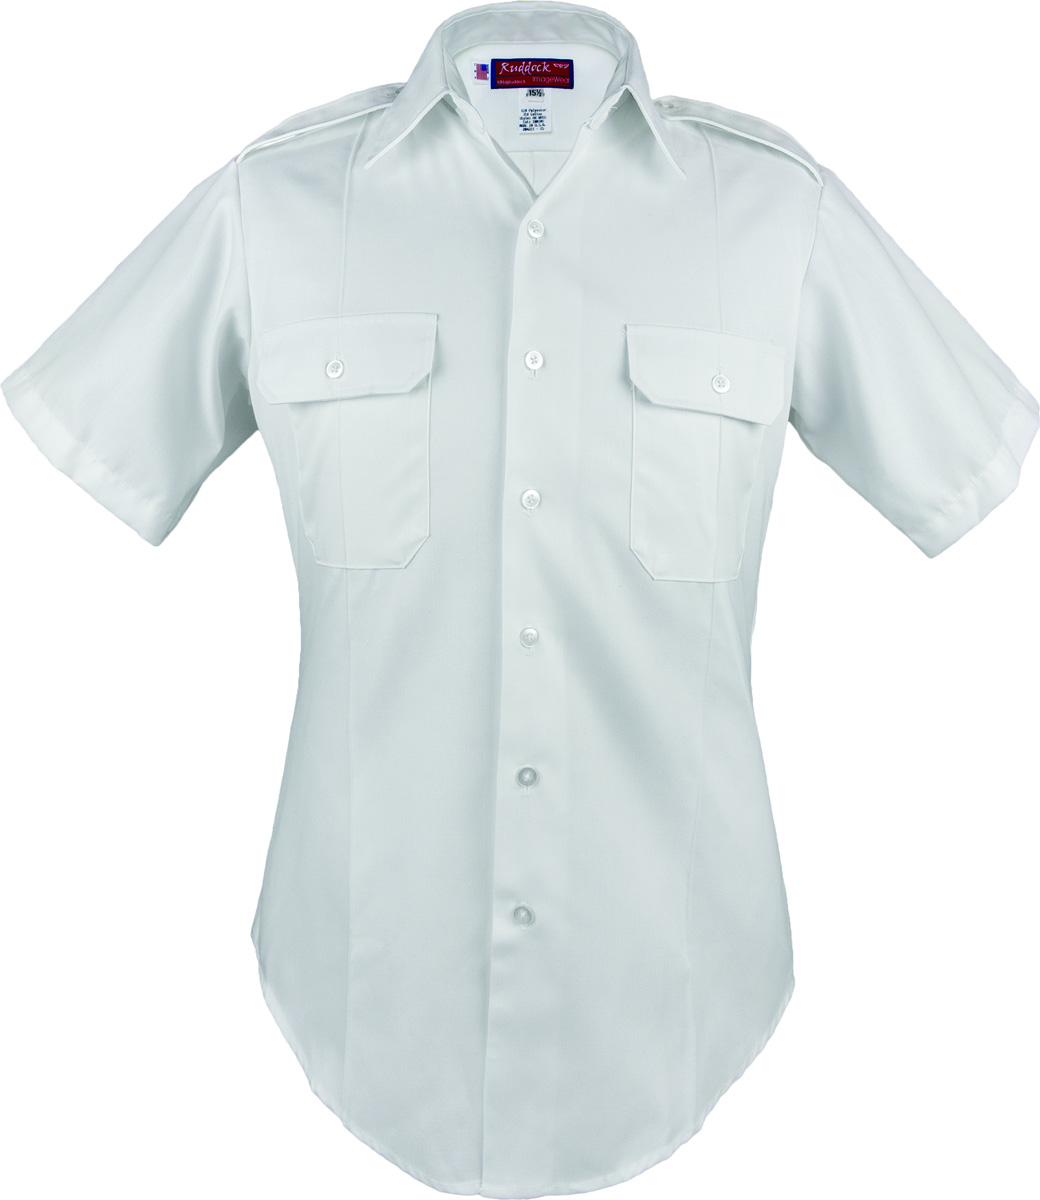 Male Army White Short Sleeve Duty Shirt Us Military